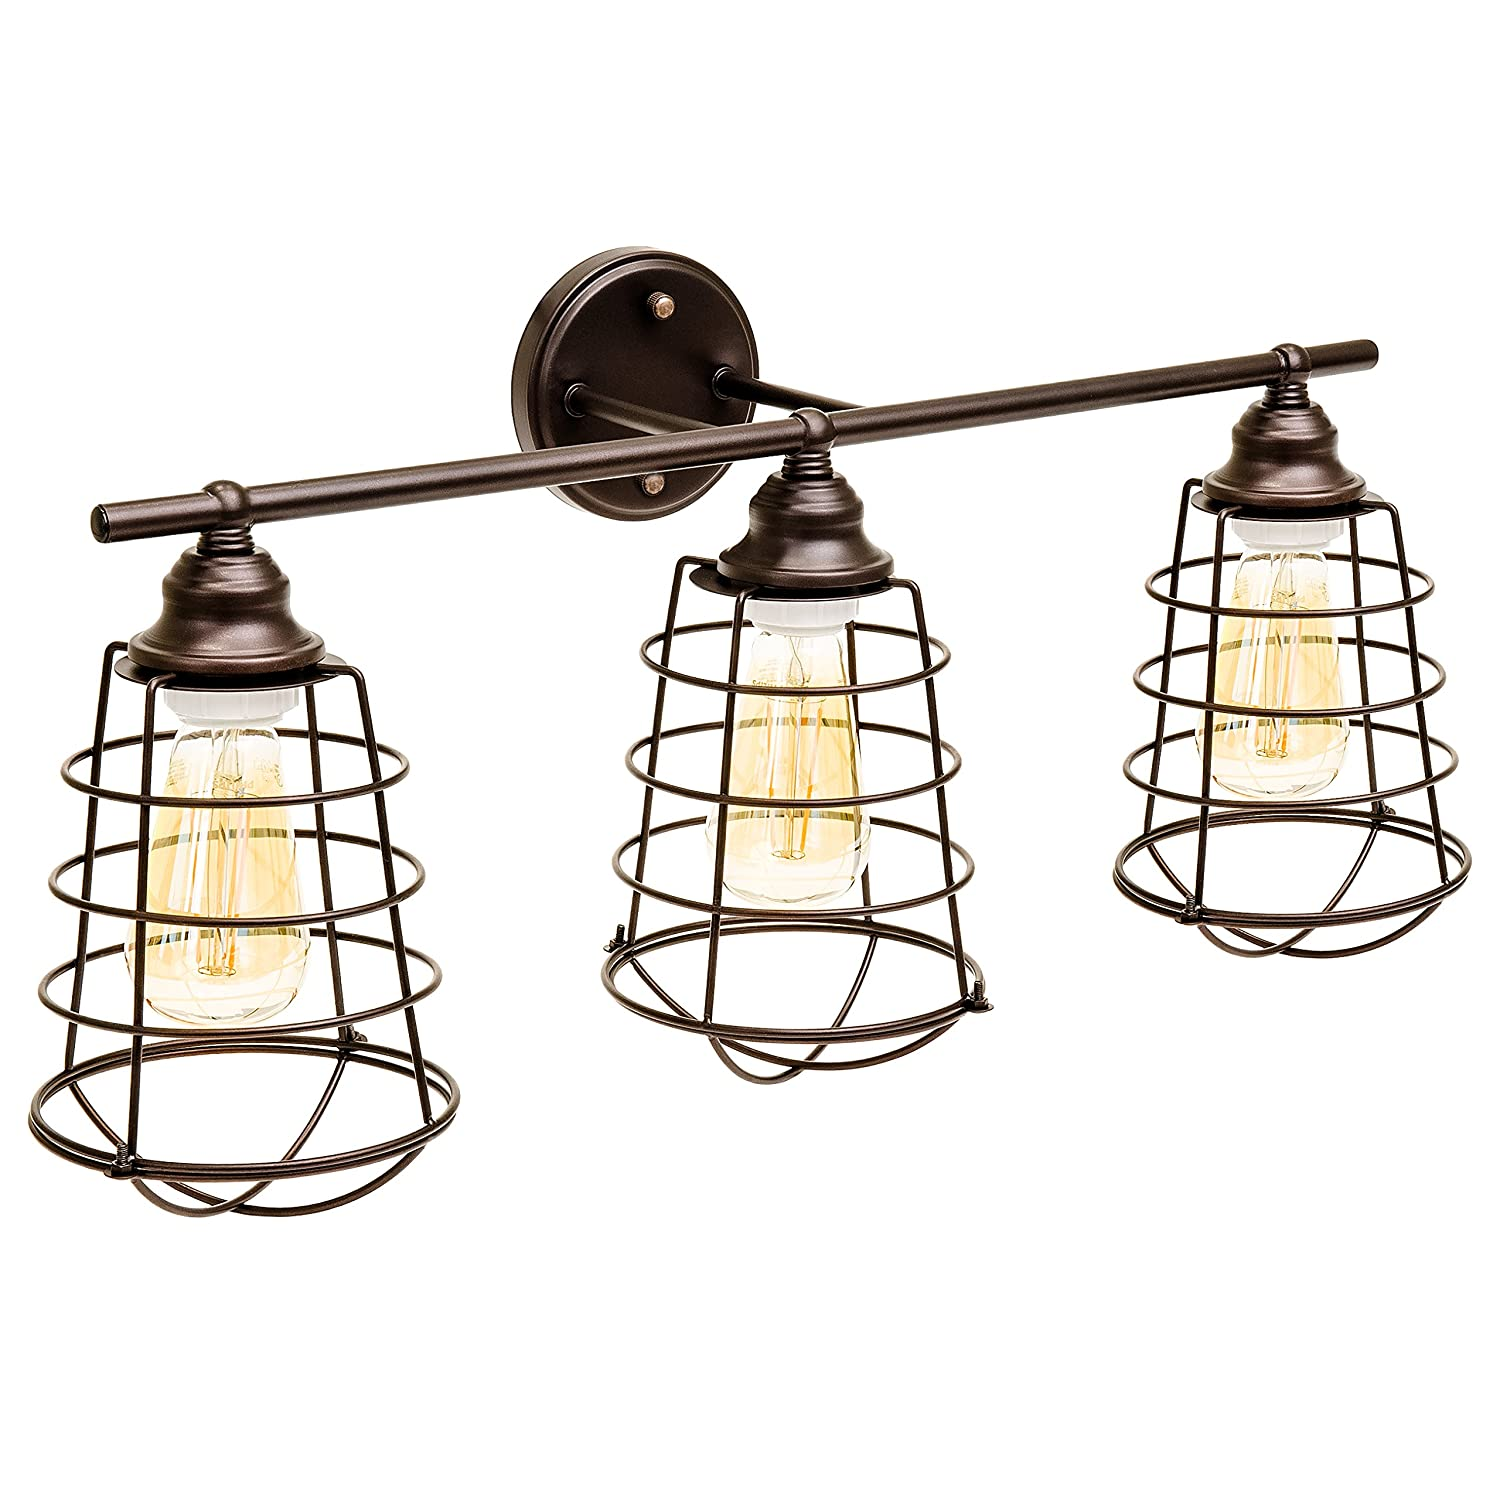 Best Choice Products Industrial Style, 3 Light, Bathroom Vanity Light Fixture Bronze